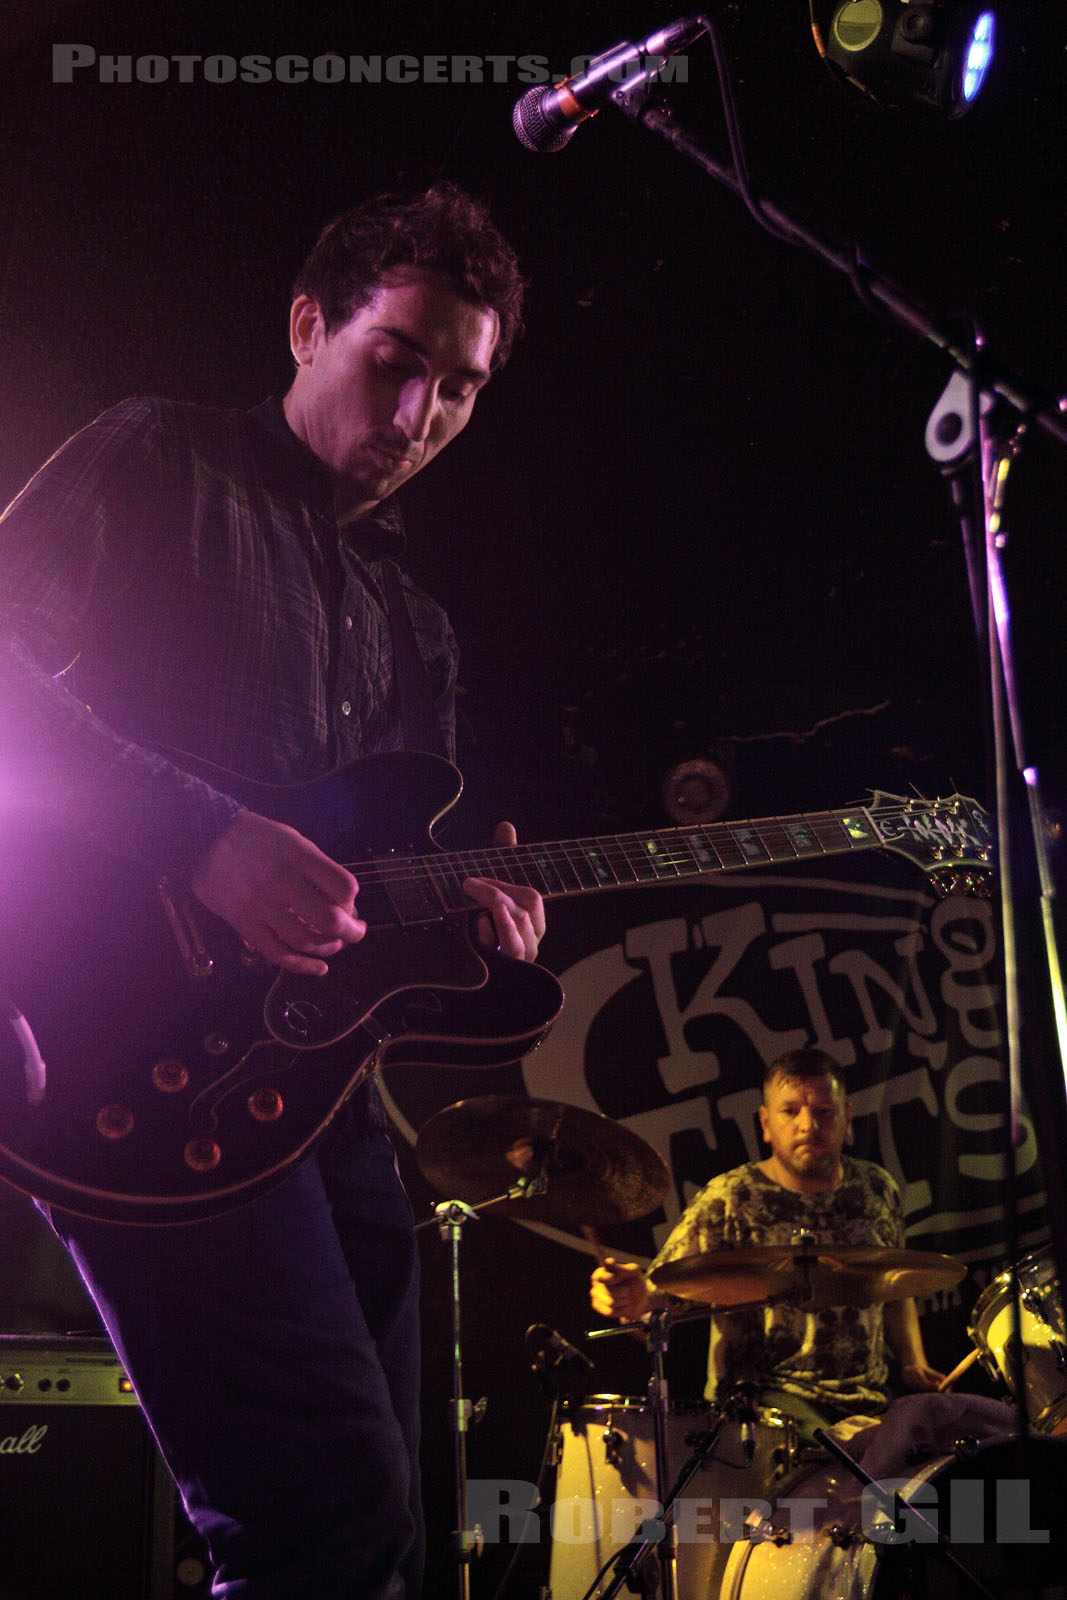 THE DEAD SETTLERS - 2016-08-05 - GLASGOW (Ecosse) - King Tut's